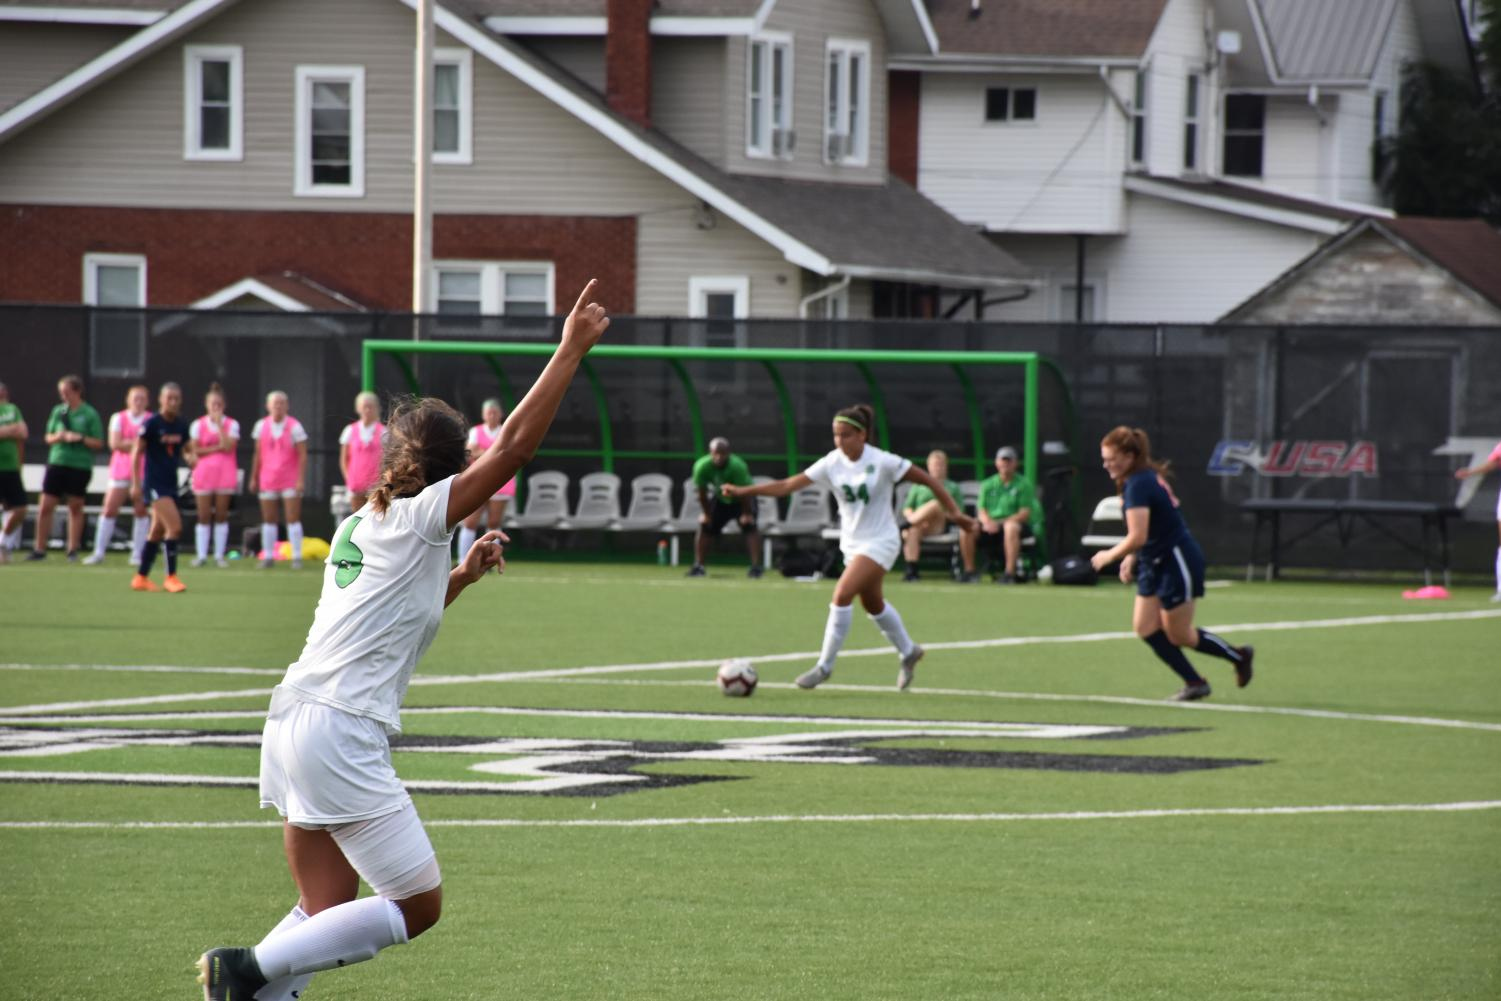 Junior forward Marah Abu-tayeh gestures for a pass from sophomore forward Canaan Booton in Marshall's home-opener against UT-Martin.  Abu-tayeh's is currently tied with her sister, Farah Abu-tayeh, for a team-leading 5 goals.